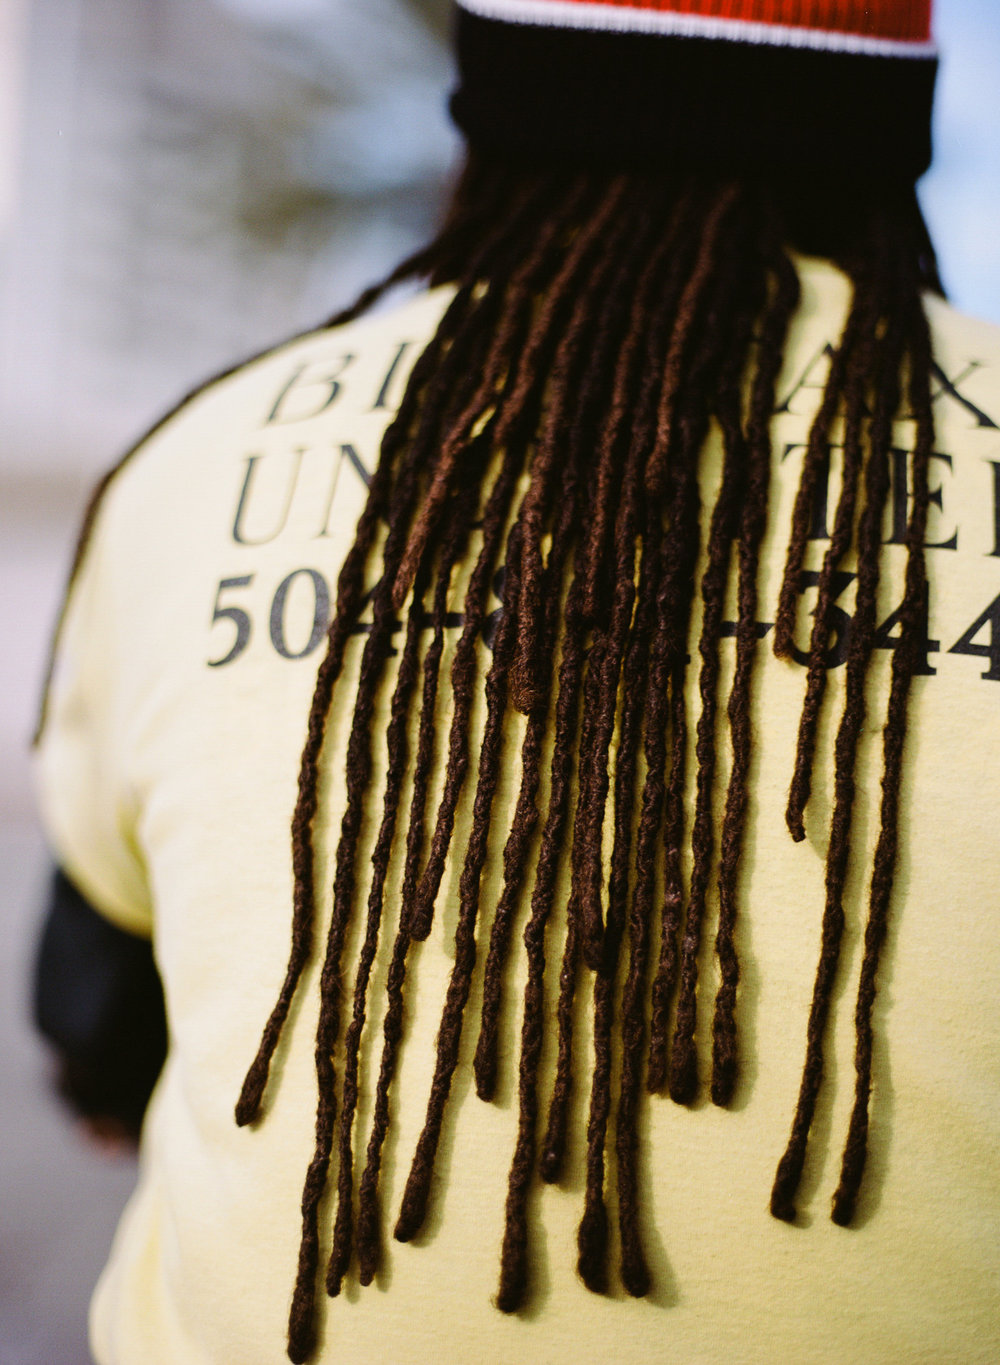 NODREADS_©kristinmyoung_SQUARELORES-2.jpg